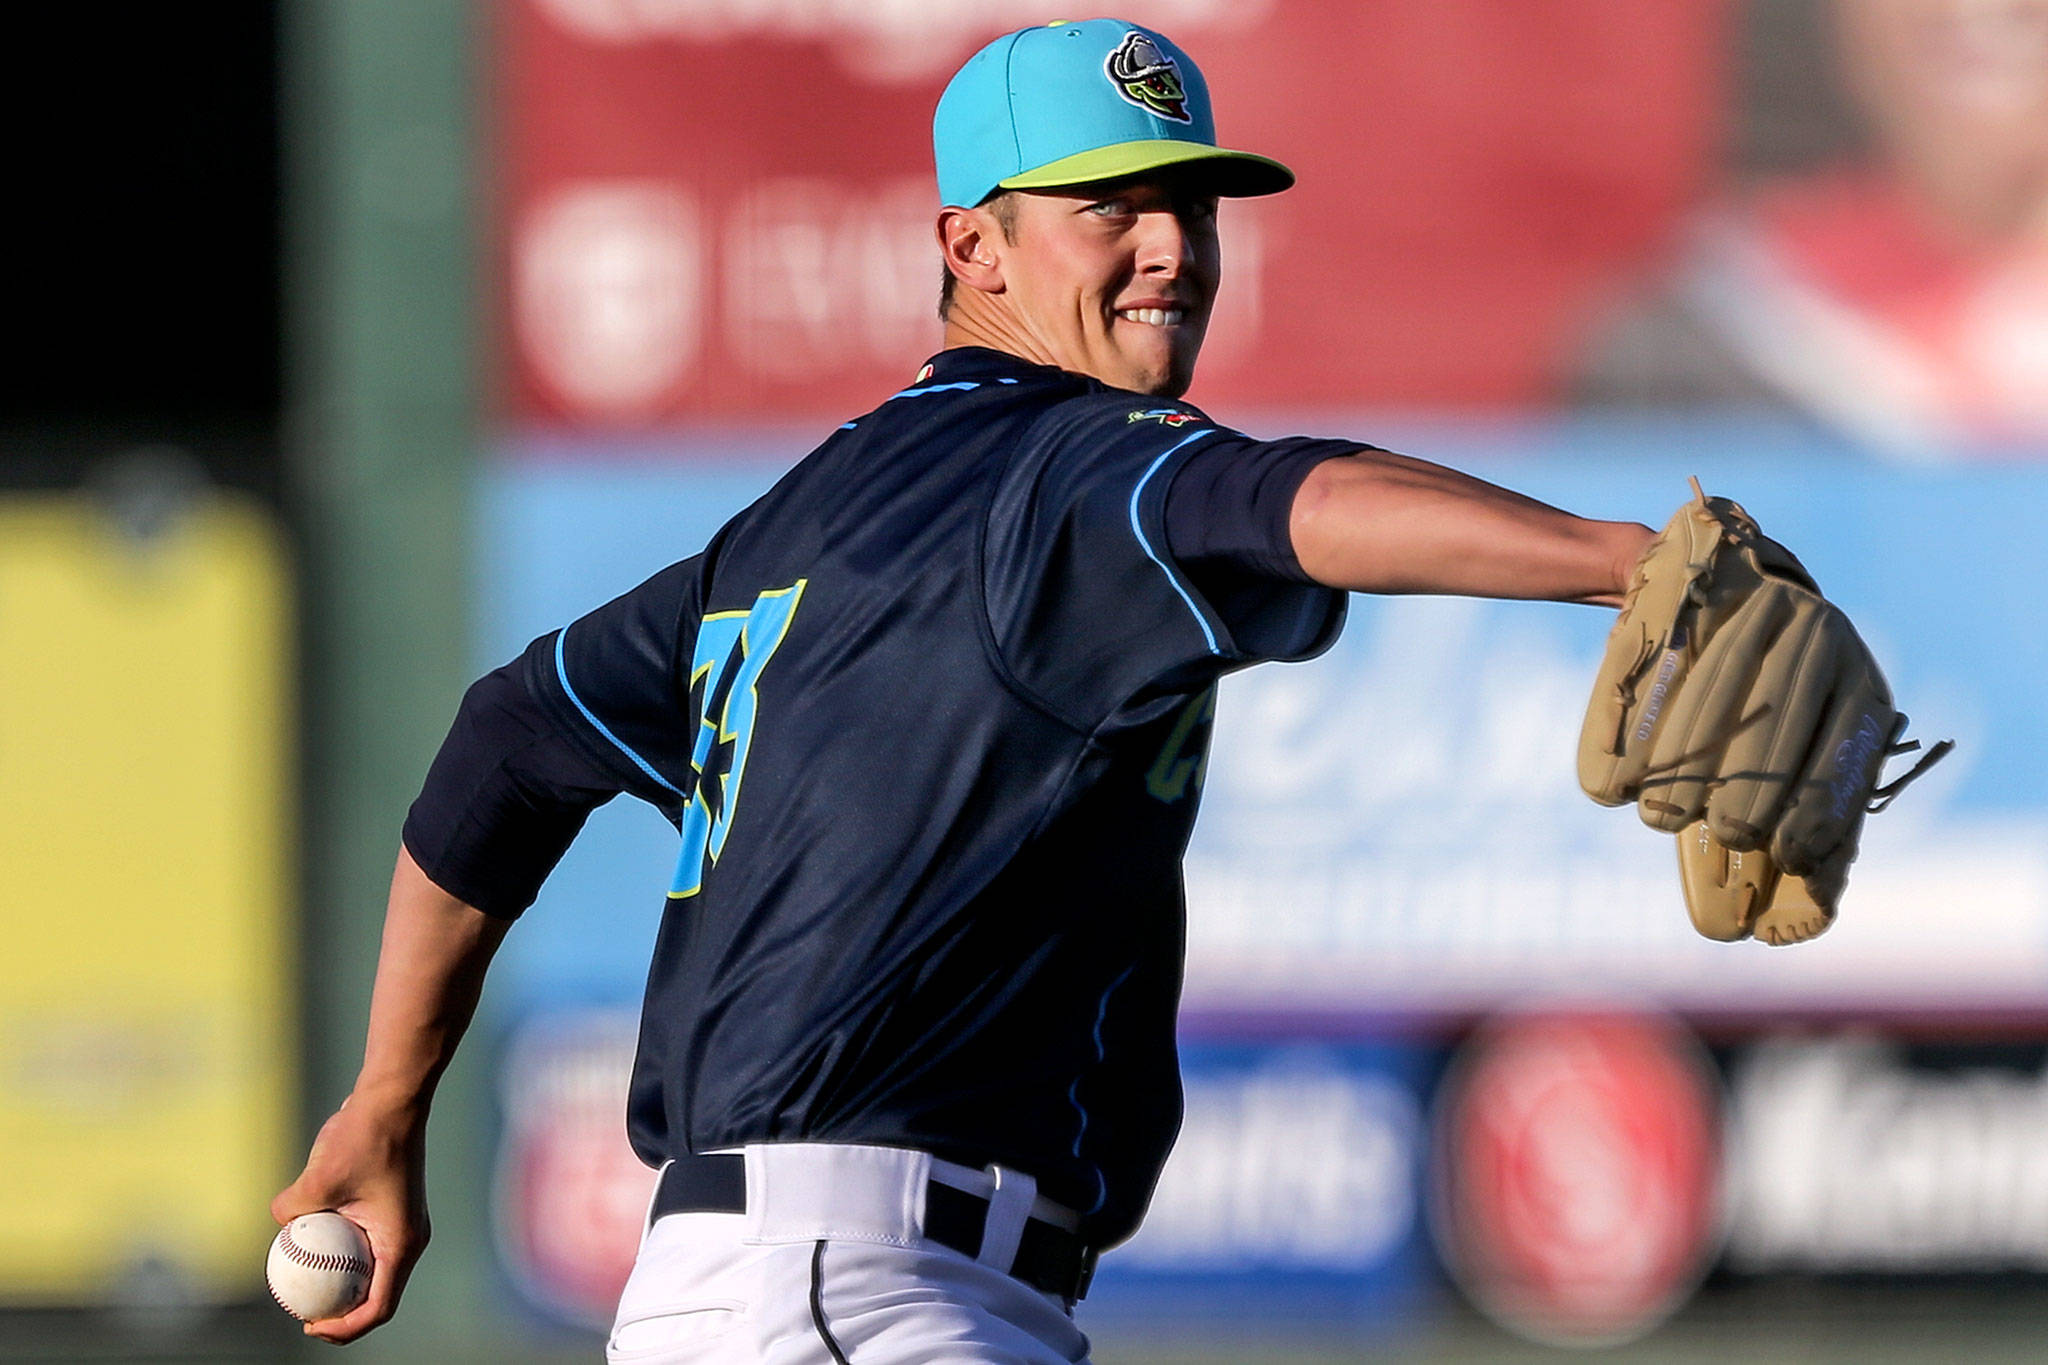 Brandon Williamson, pictured here in 2019, is another highly regarded pitching prospect on the AquaSox roster. Kevin Clark / The Herald)